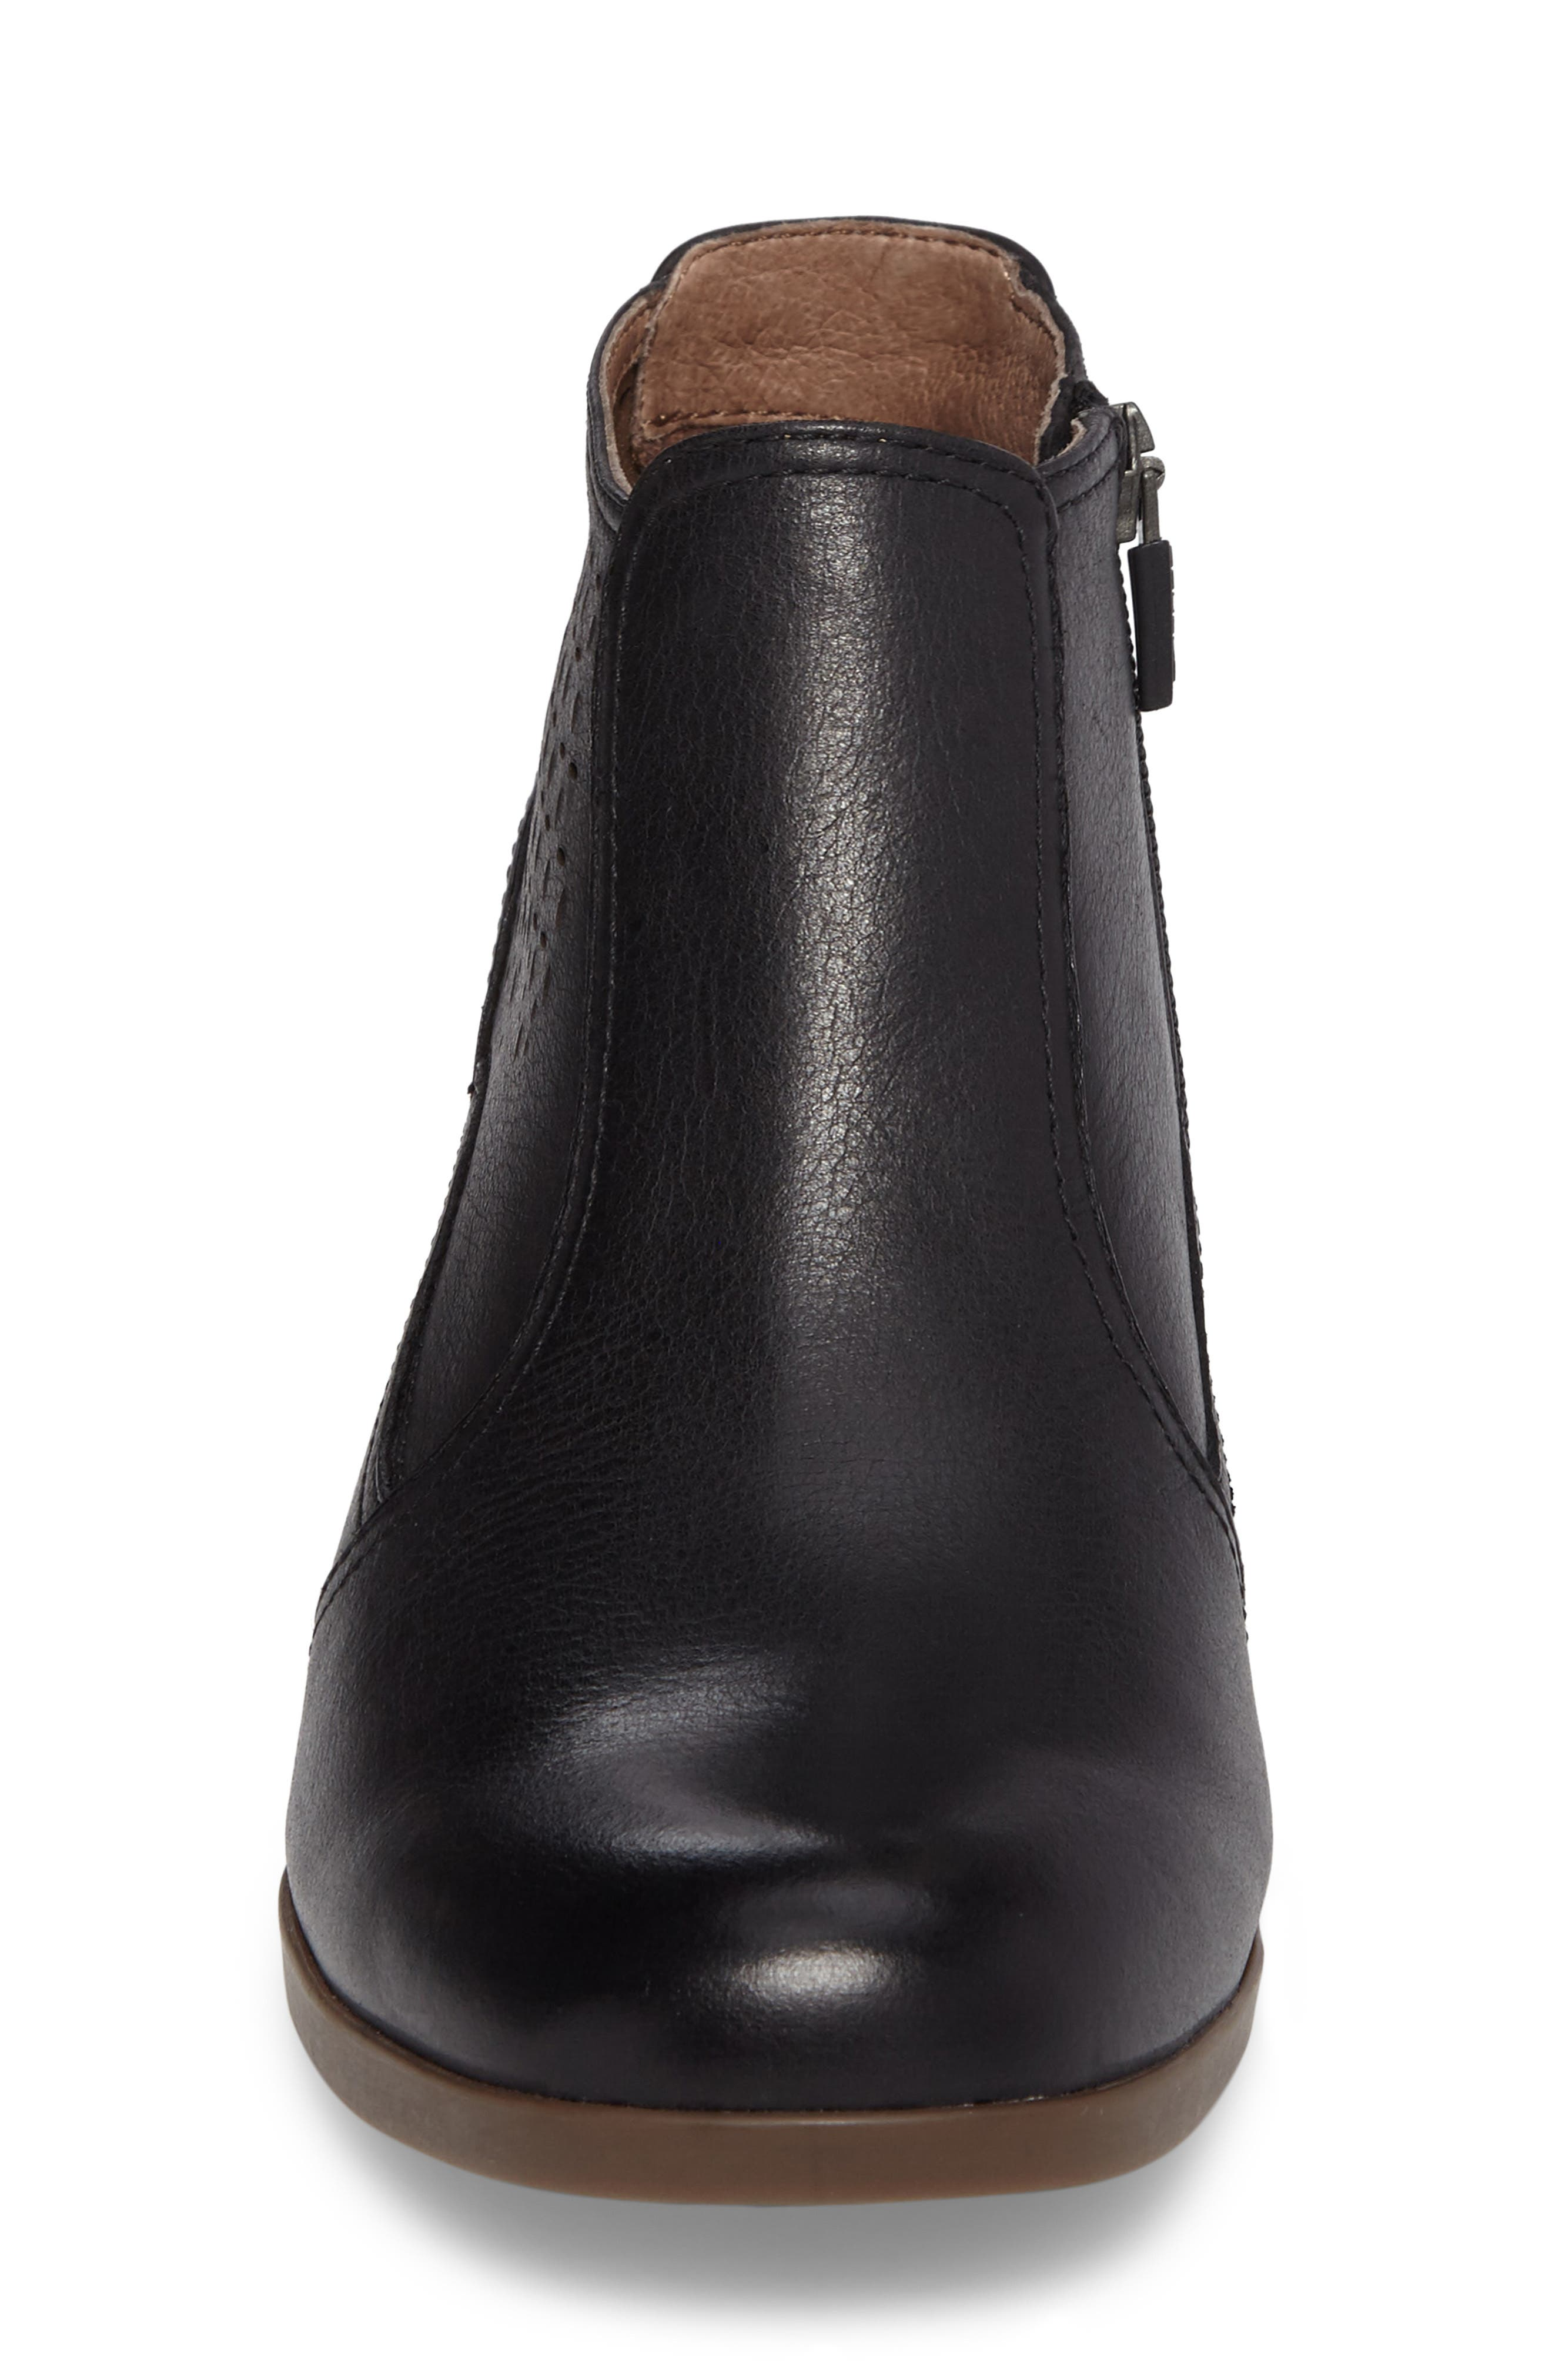 Liberty Laser Cut Bootie,                             Alternate thumbnail 5, color,                             Black Burnished Nappa Leather